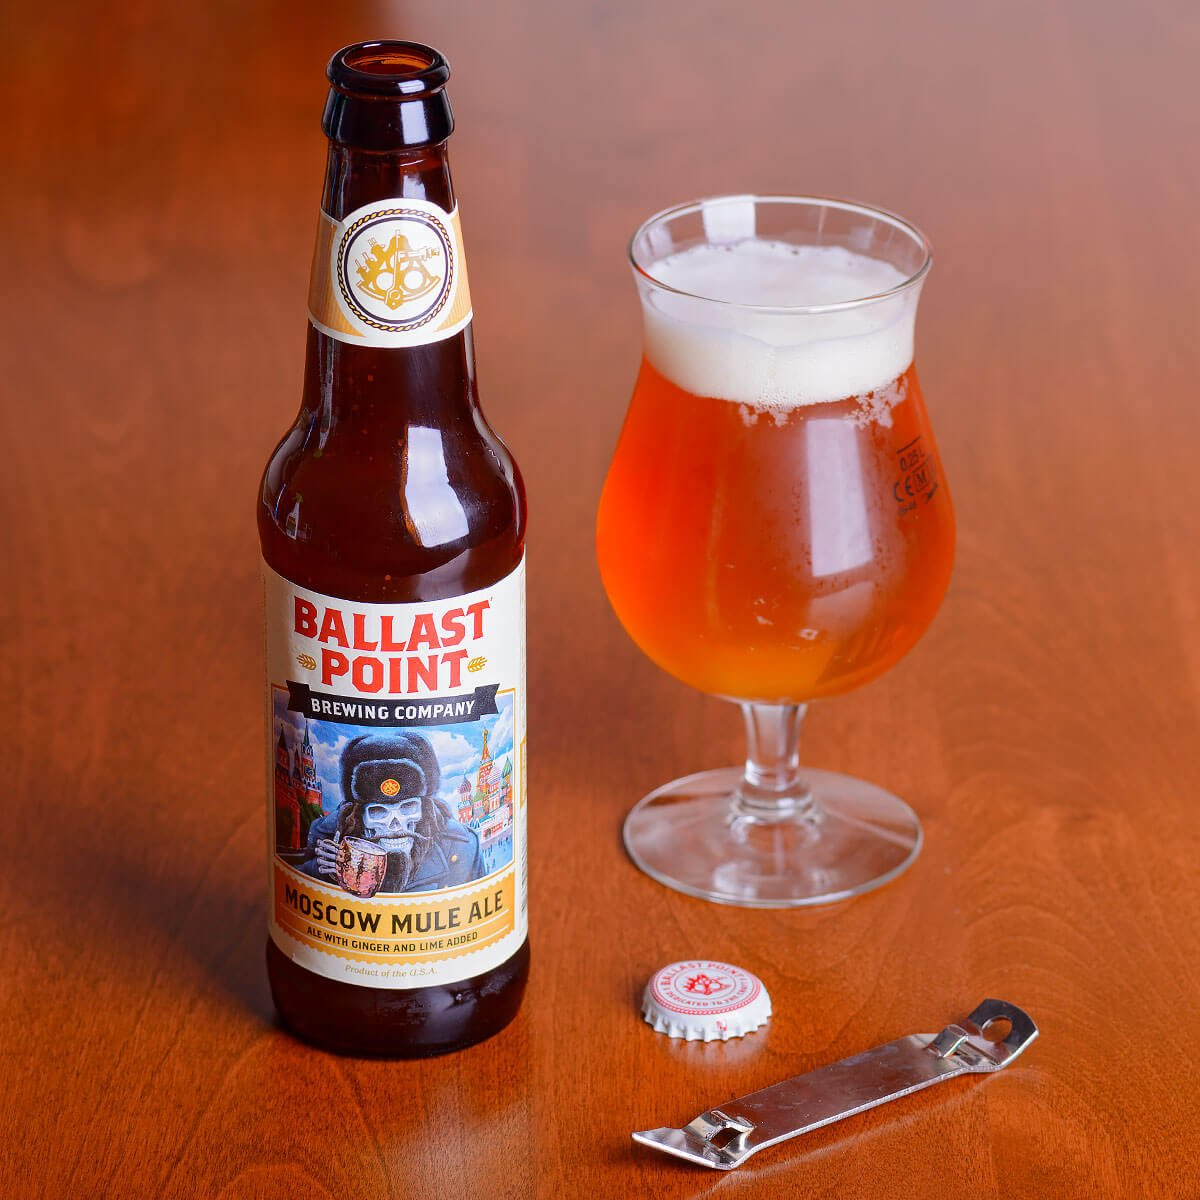 Moscow Mule, an American Wild Ale by Ballast Point Brewing Company